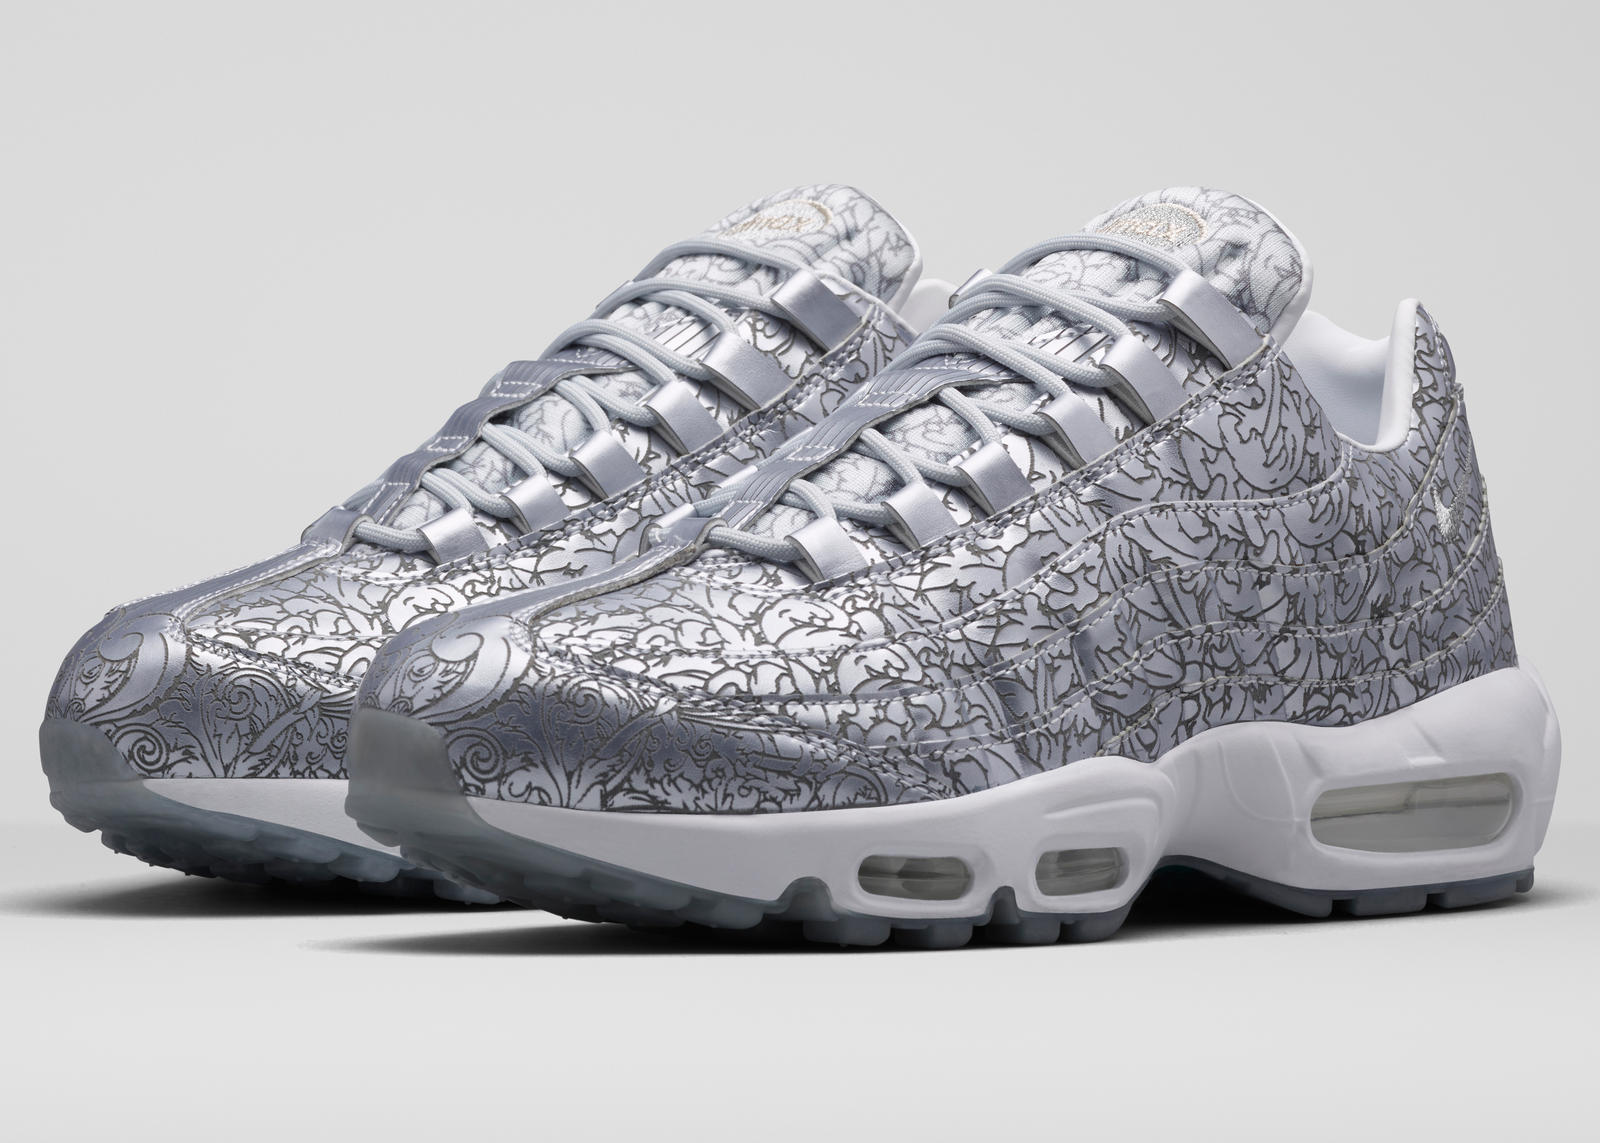 buy nike air max 2015 womens silver anniversary team members